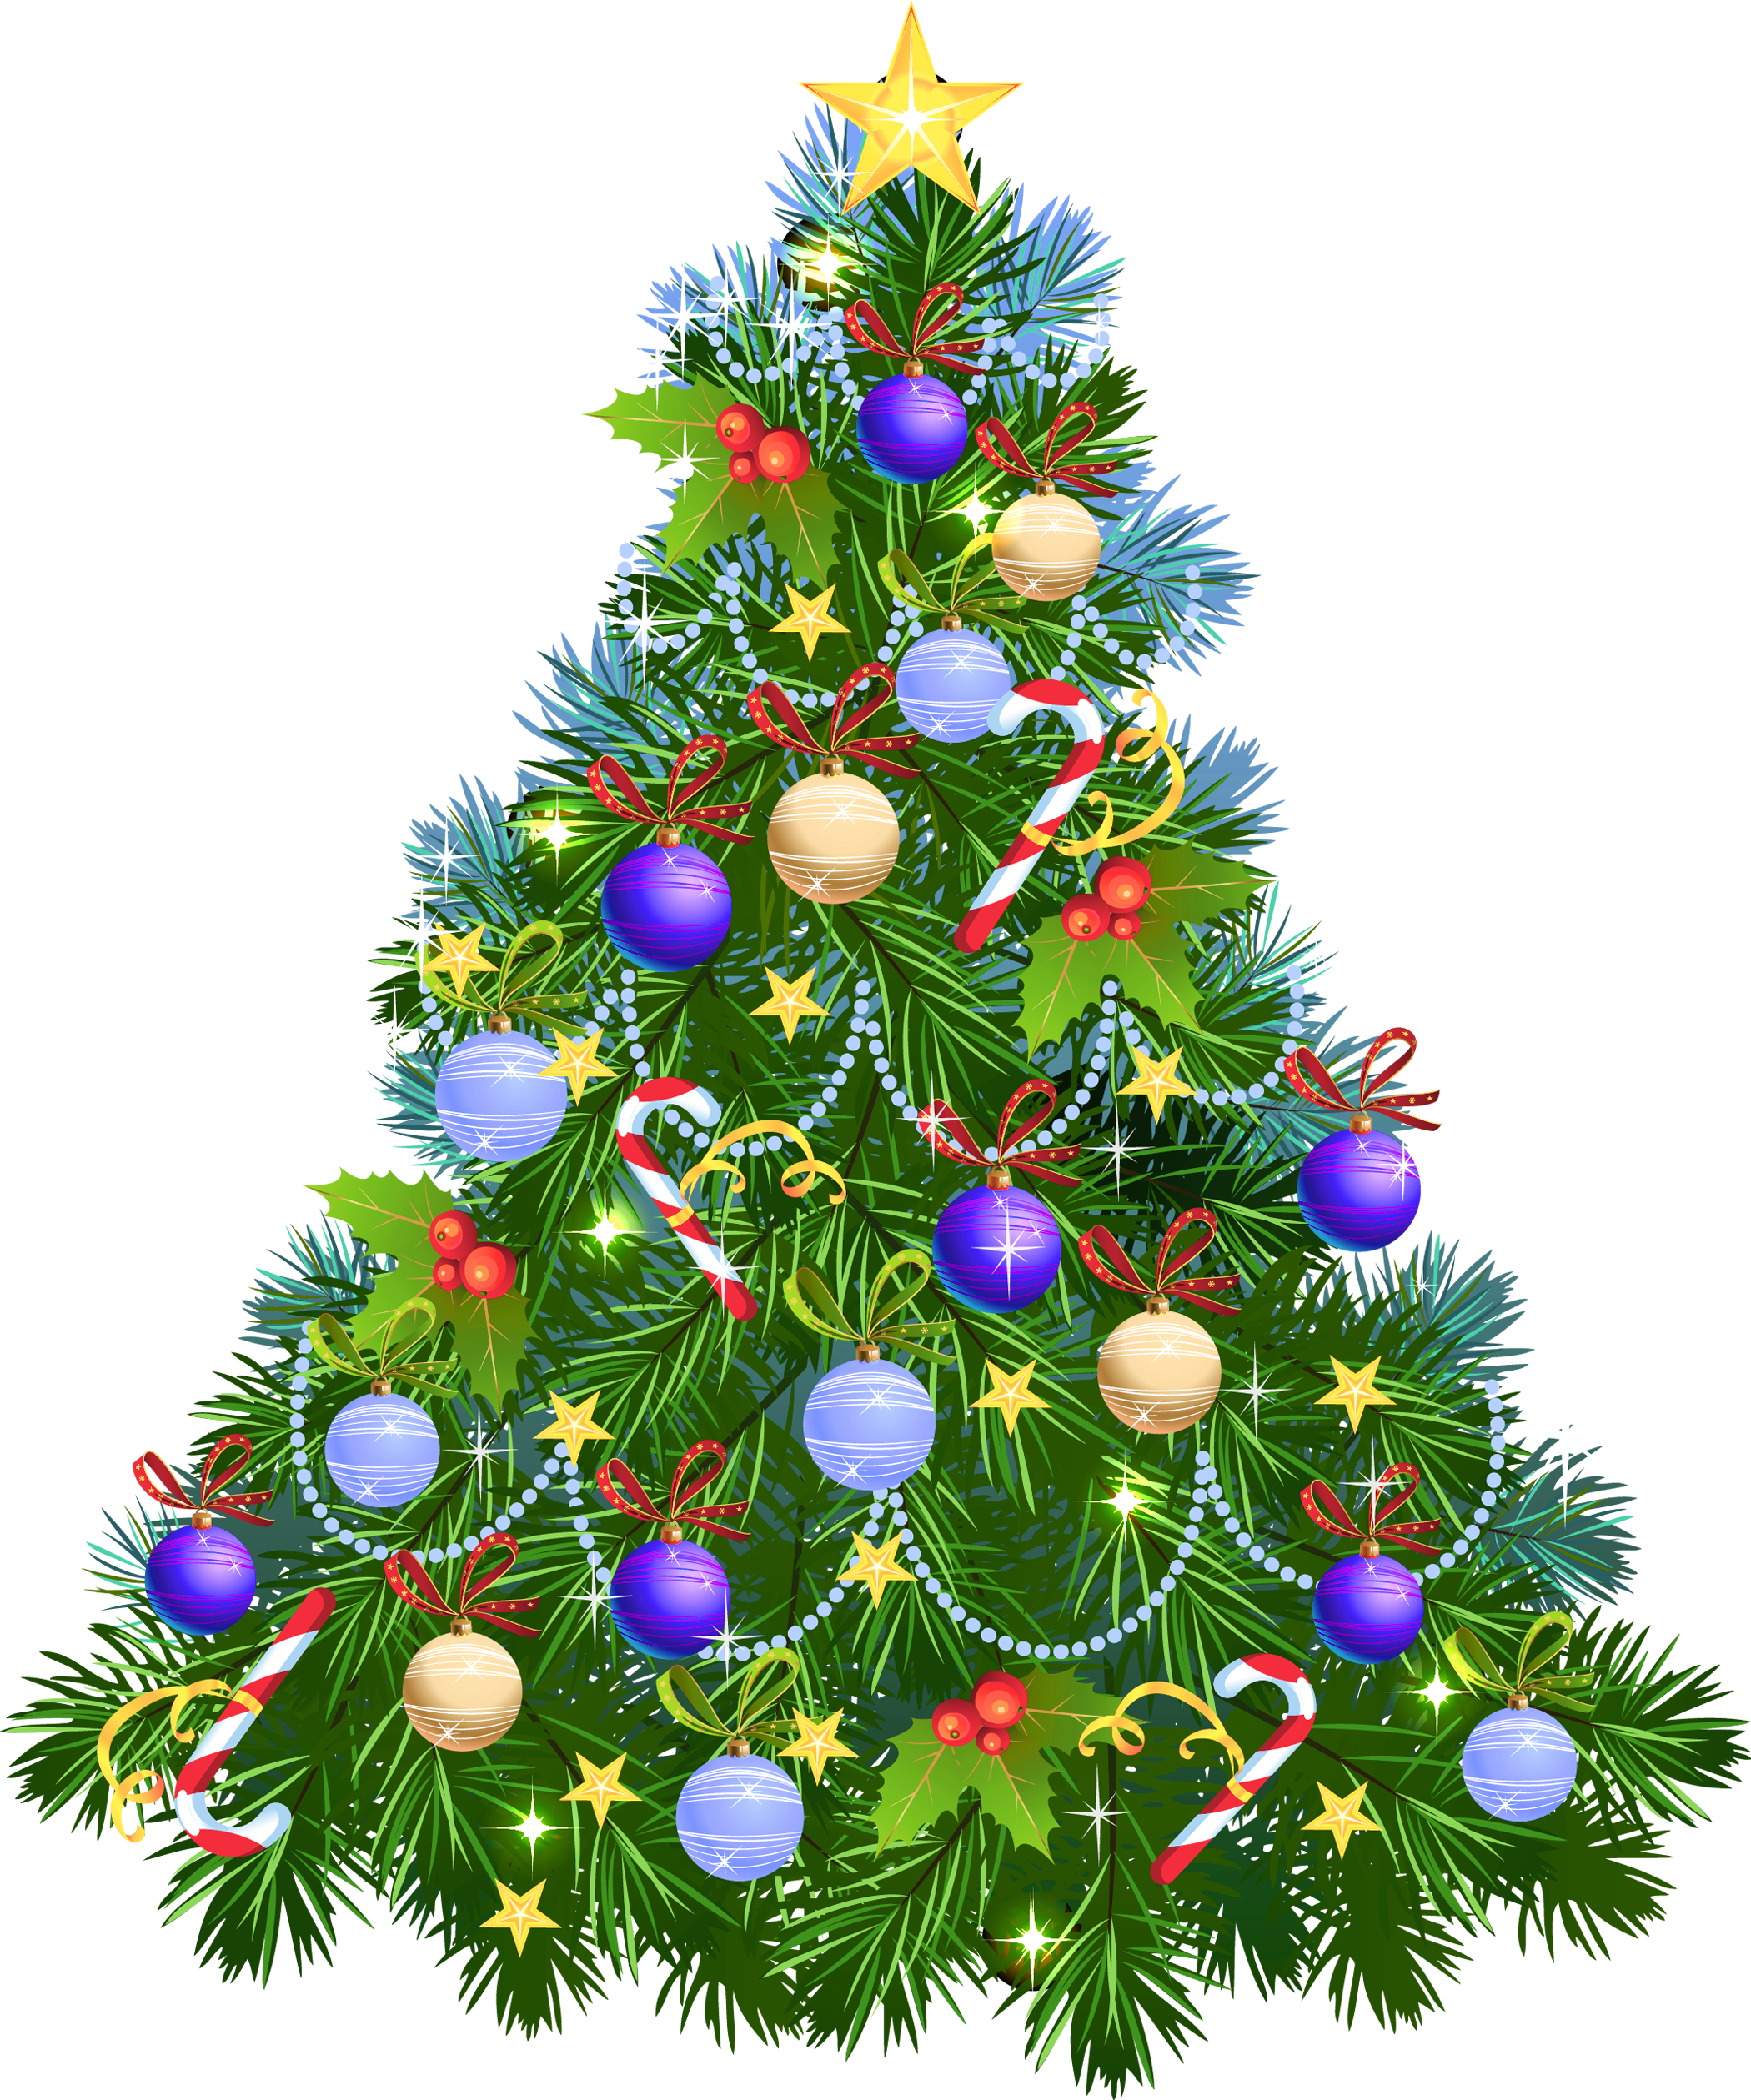 christmas tree transparent 35270 free icons and png backgrounds